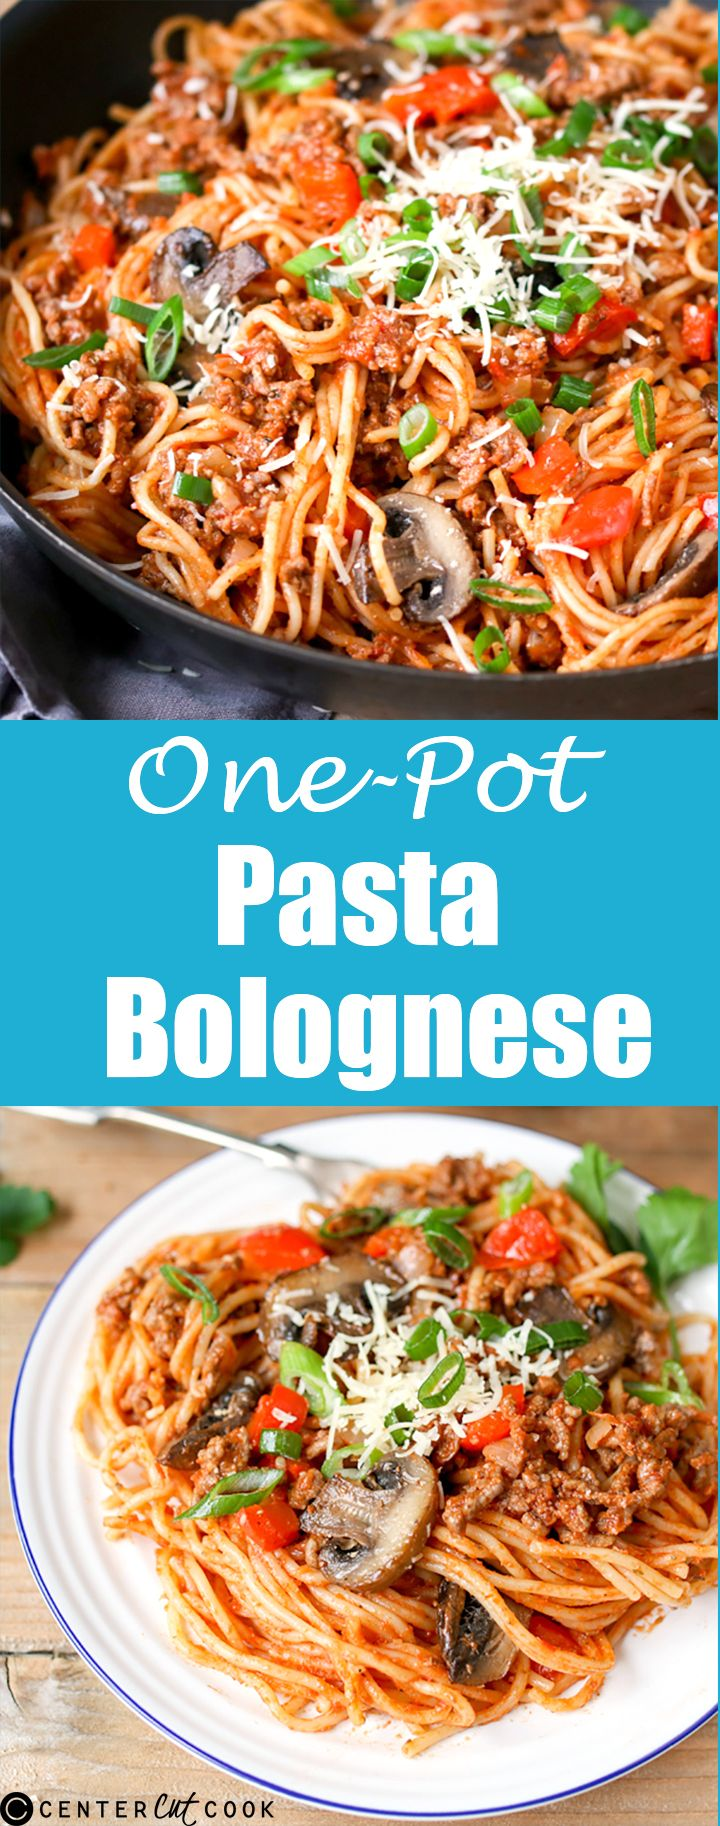 Save on the washing up and make this delicious PASTA BOLOGNESE all in one pan!